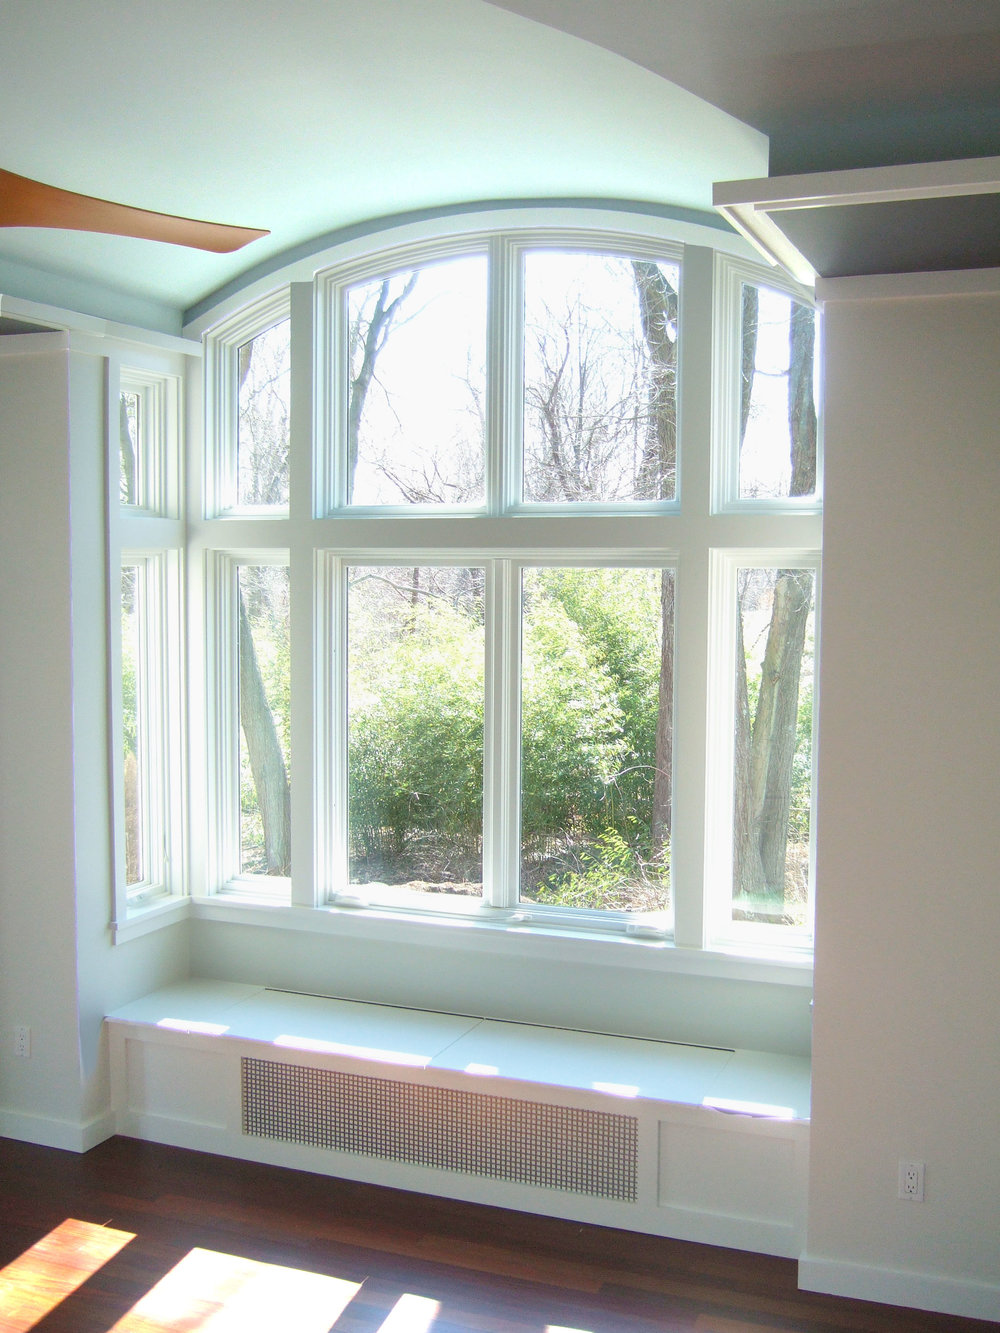 westport-green-renovation-bay-window.jpg